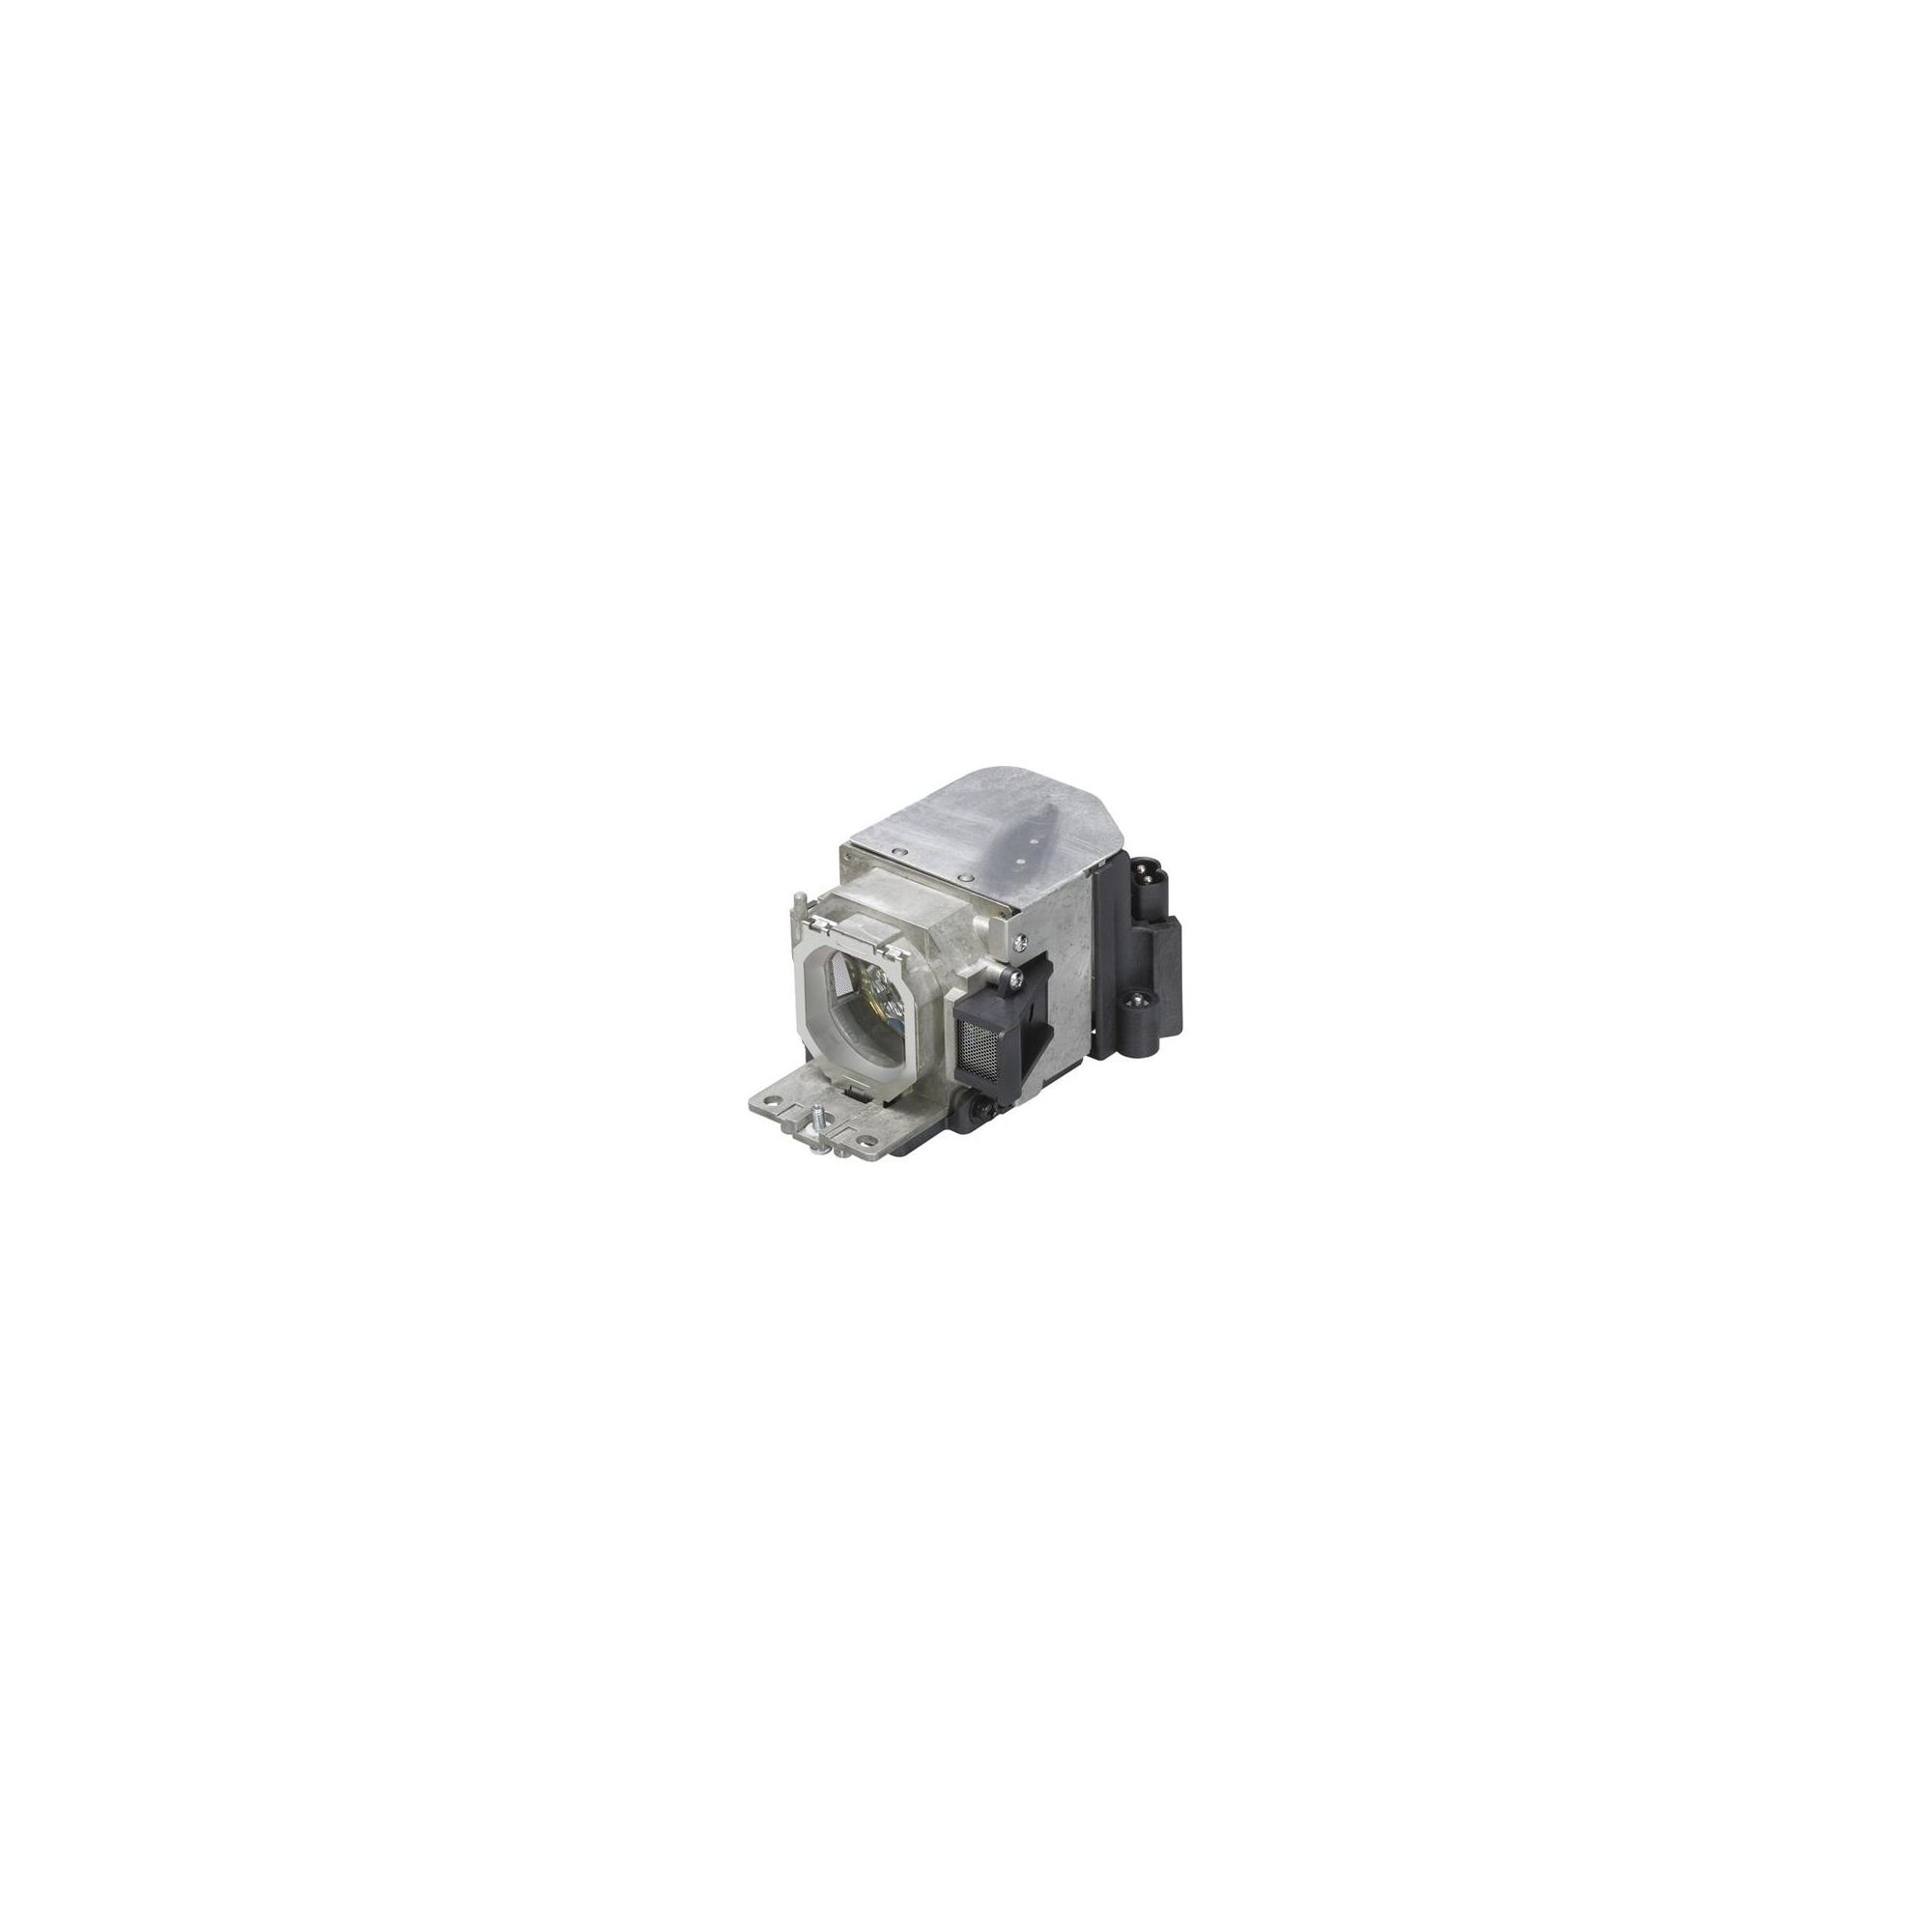 Sony LMP-D200 Replacement Lamp for VPL-DX10, VPL-DX11, VPL-DX15 Projectors at Tesco Direct